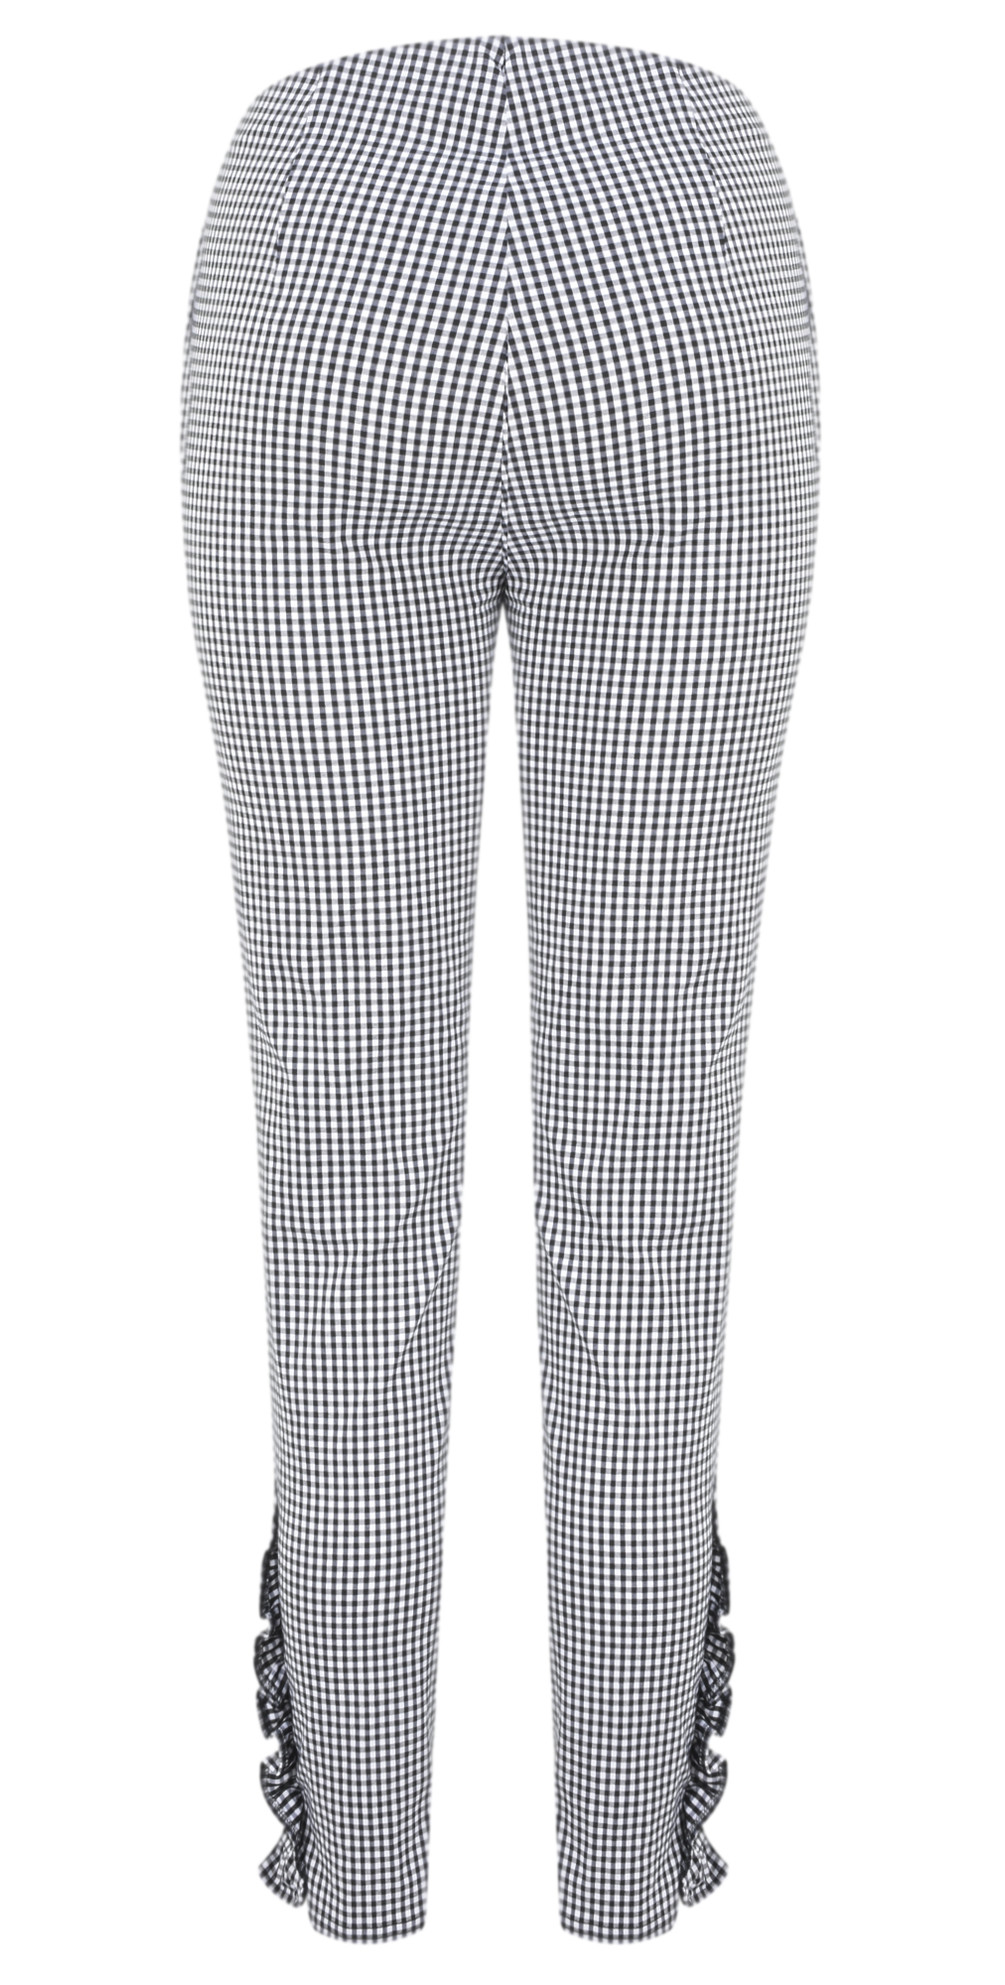 Rose 09 7/8 Gingham Frill Cropped Trouser main image